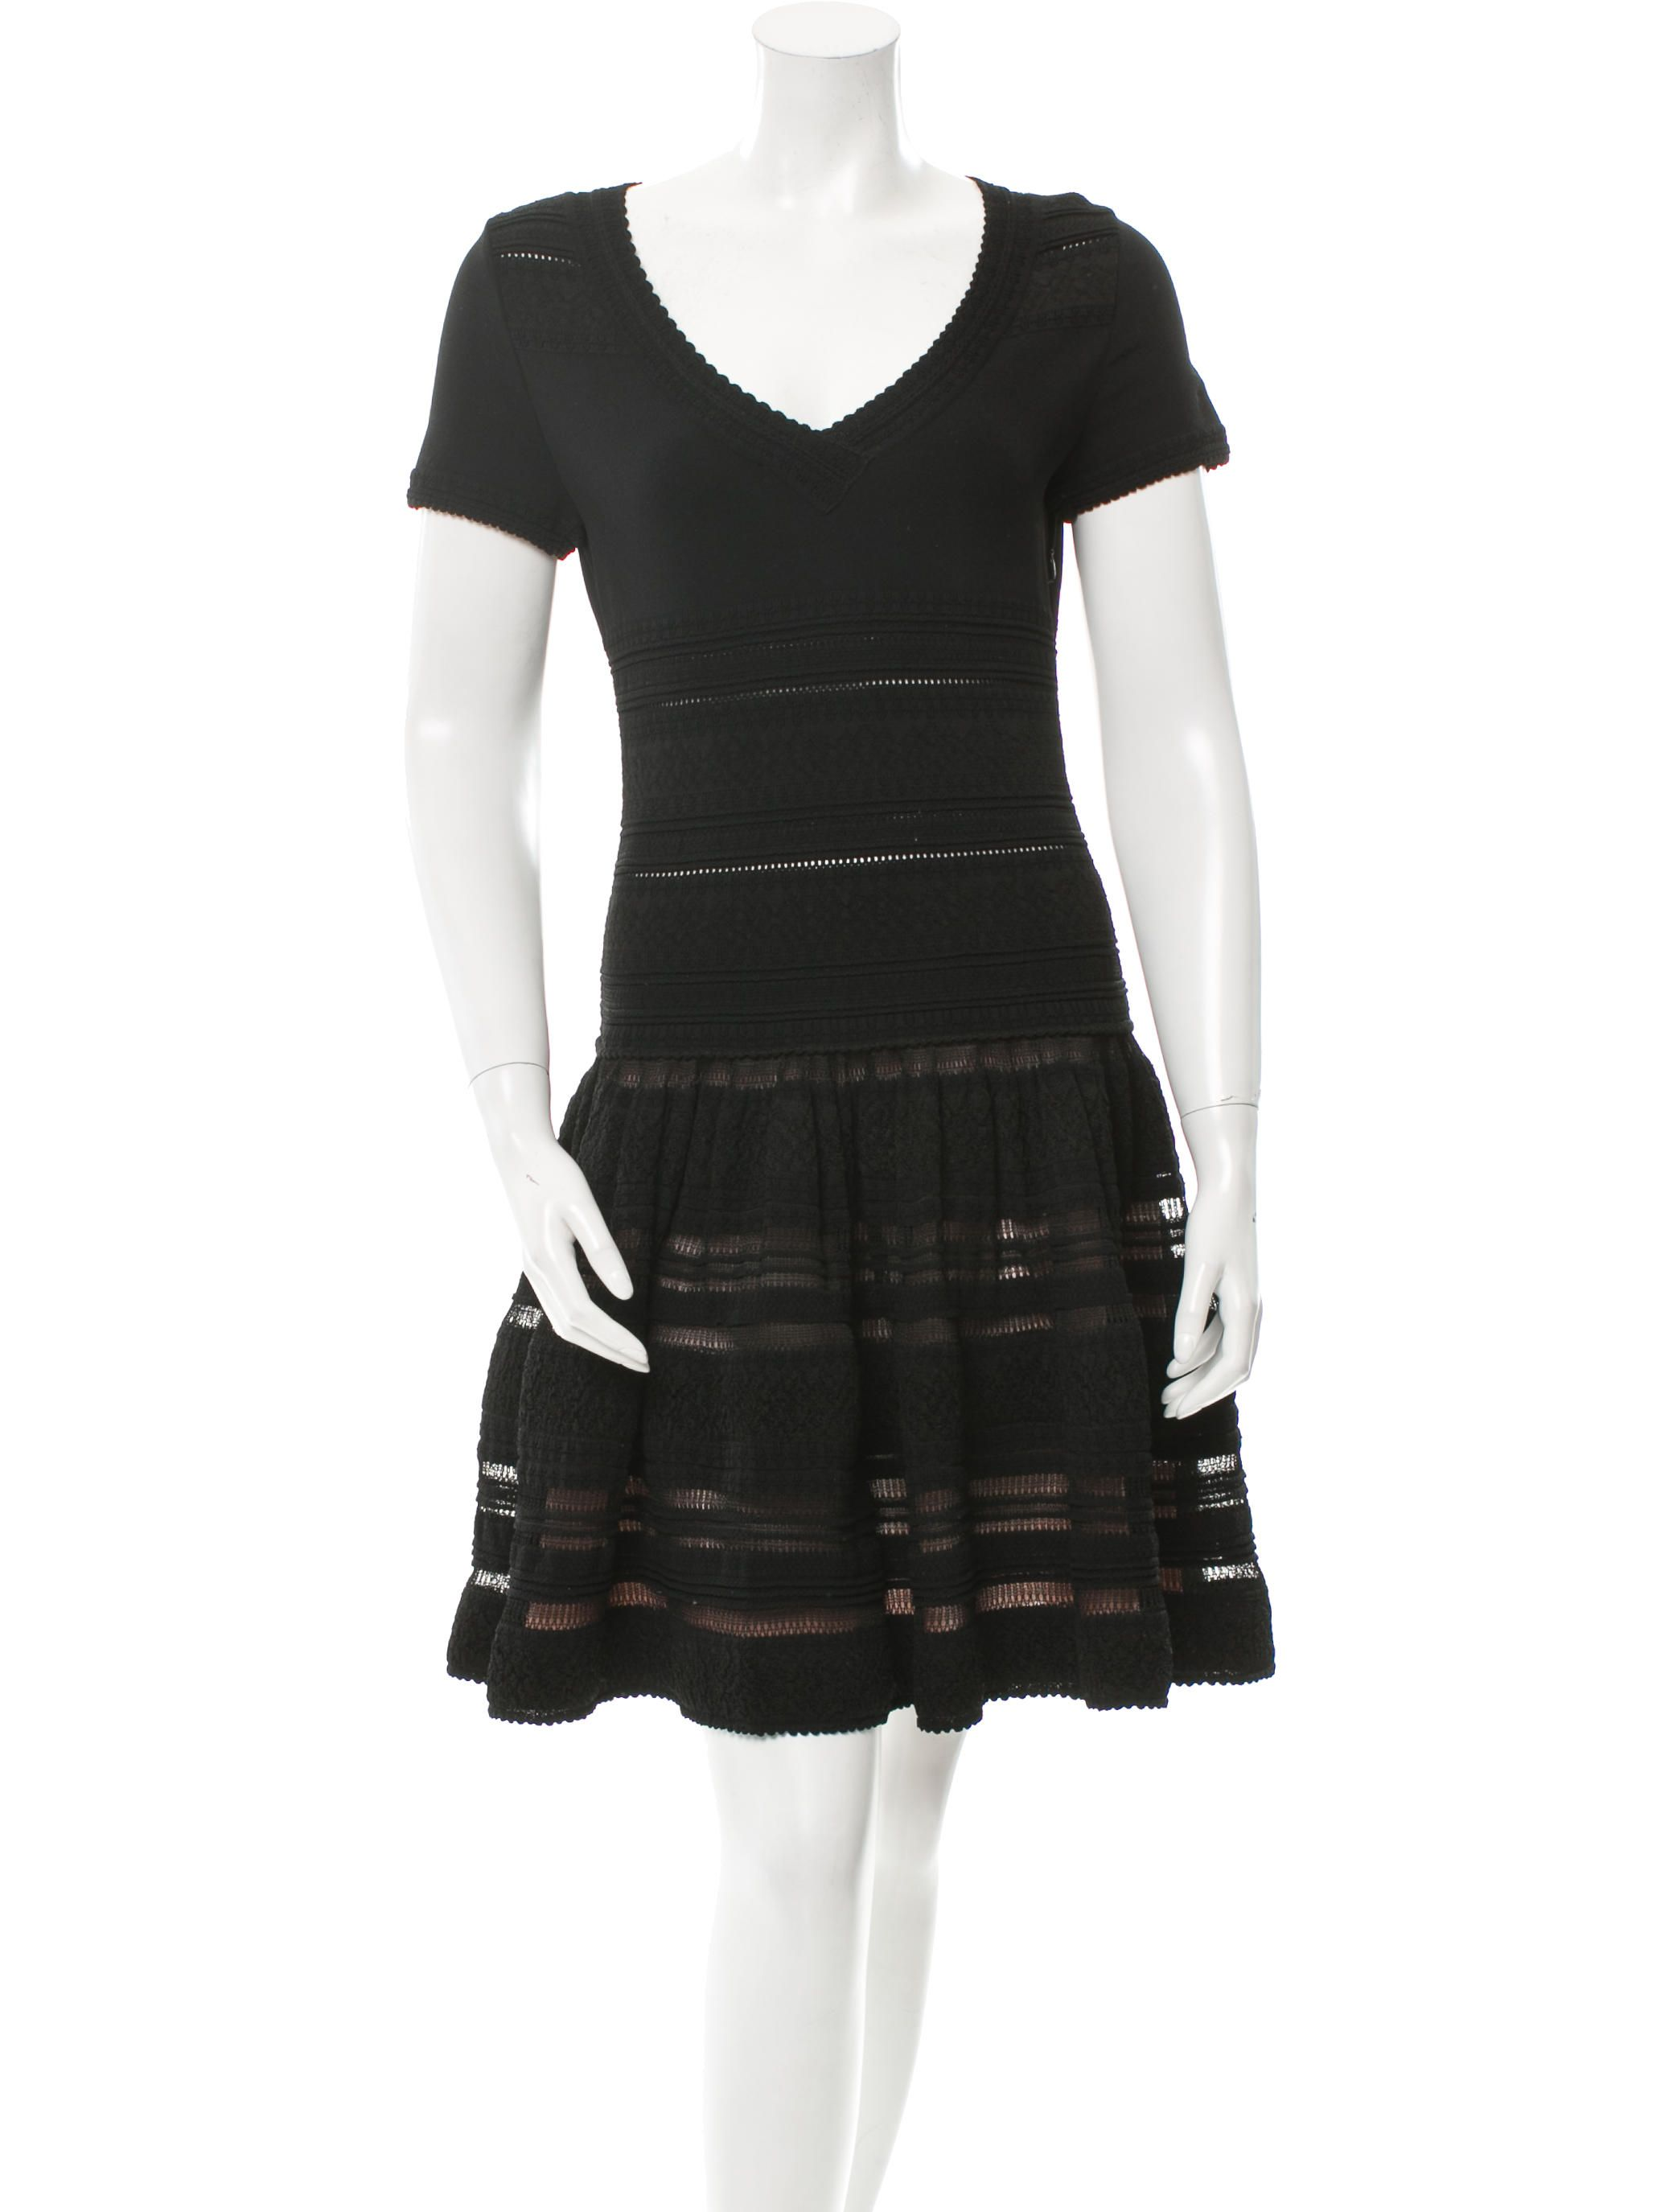 a03276c3 Black Alaïa stretch knit dress with V-neck, drop waist, nude underlay at  open knit skirt and concealed zip closure at side seam.